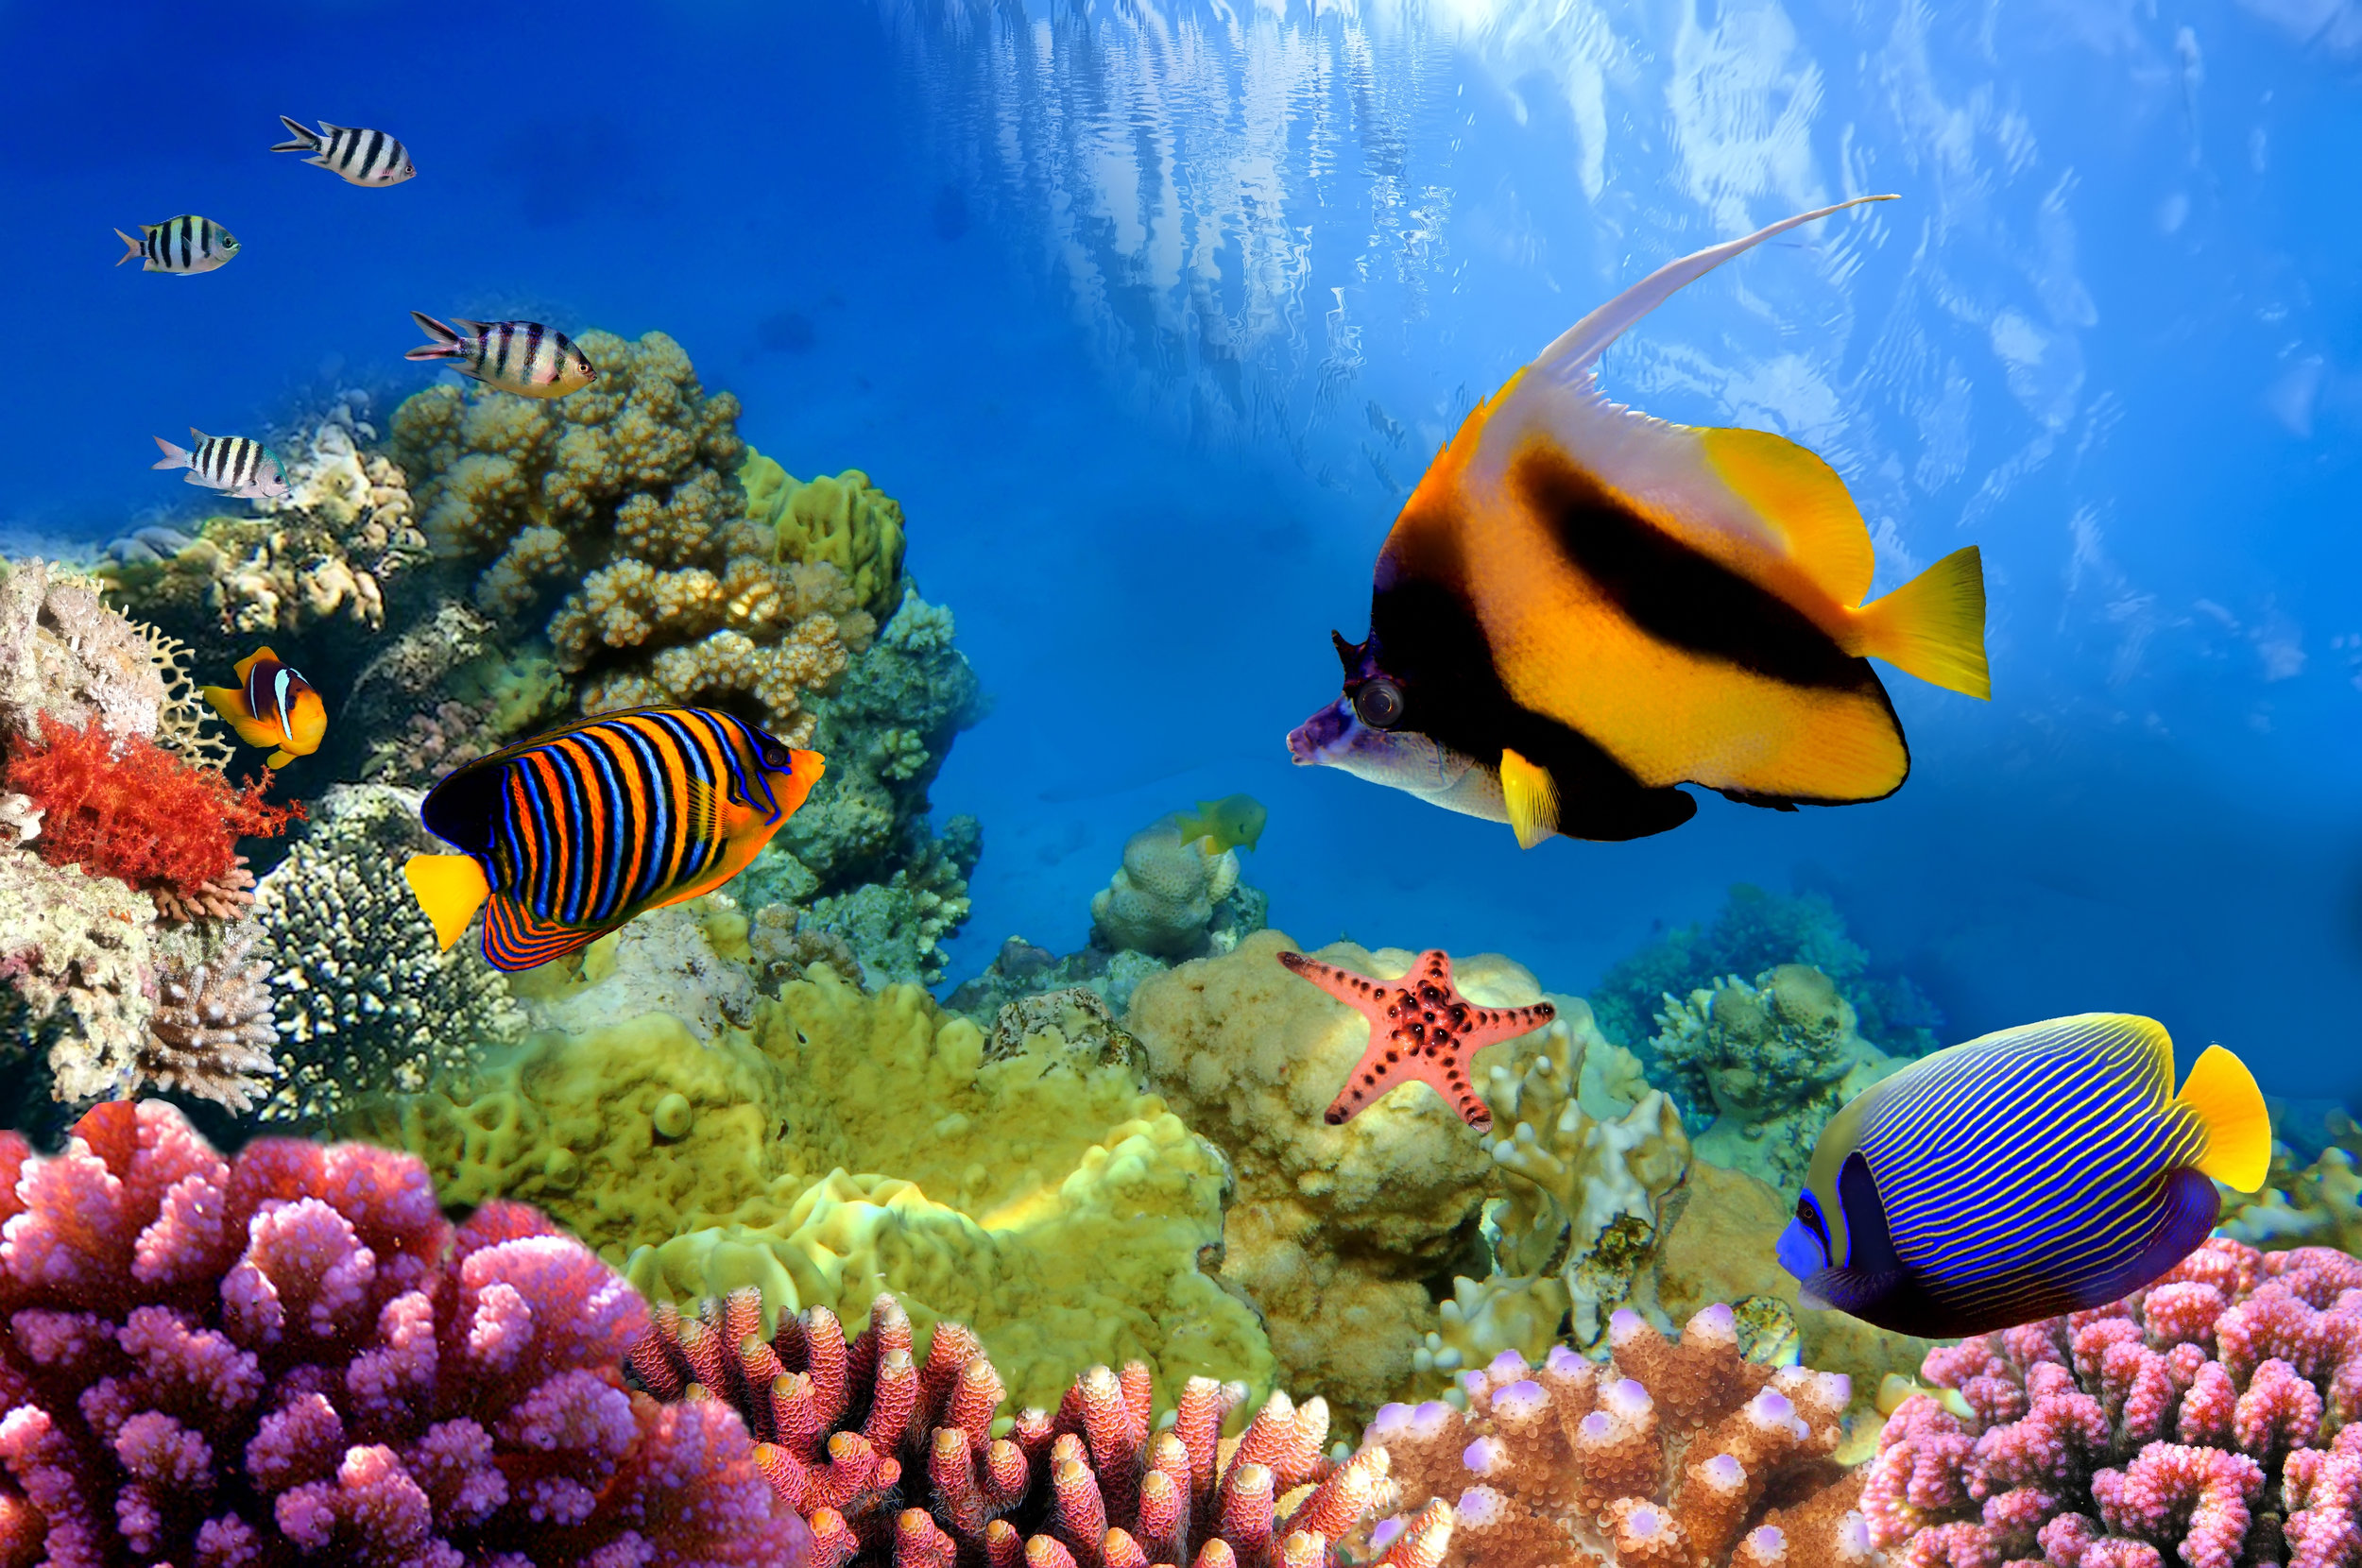 11.Now that's huge! - The planet's largest living structure is the Great Barrier Reef. The Great Barrier Reef is 132,974 square miles in size and it's the only object made by living beings that can be seen from space! I definitely will be visiting here some day to dive on the reef.